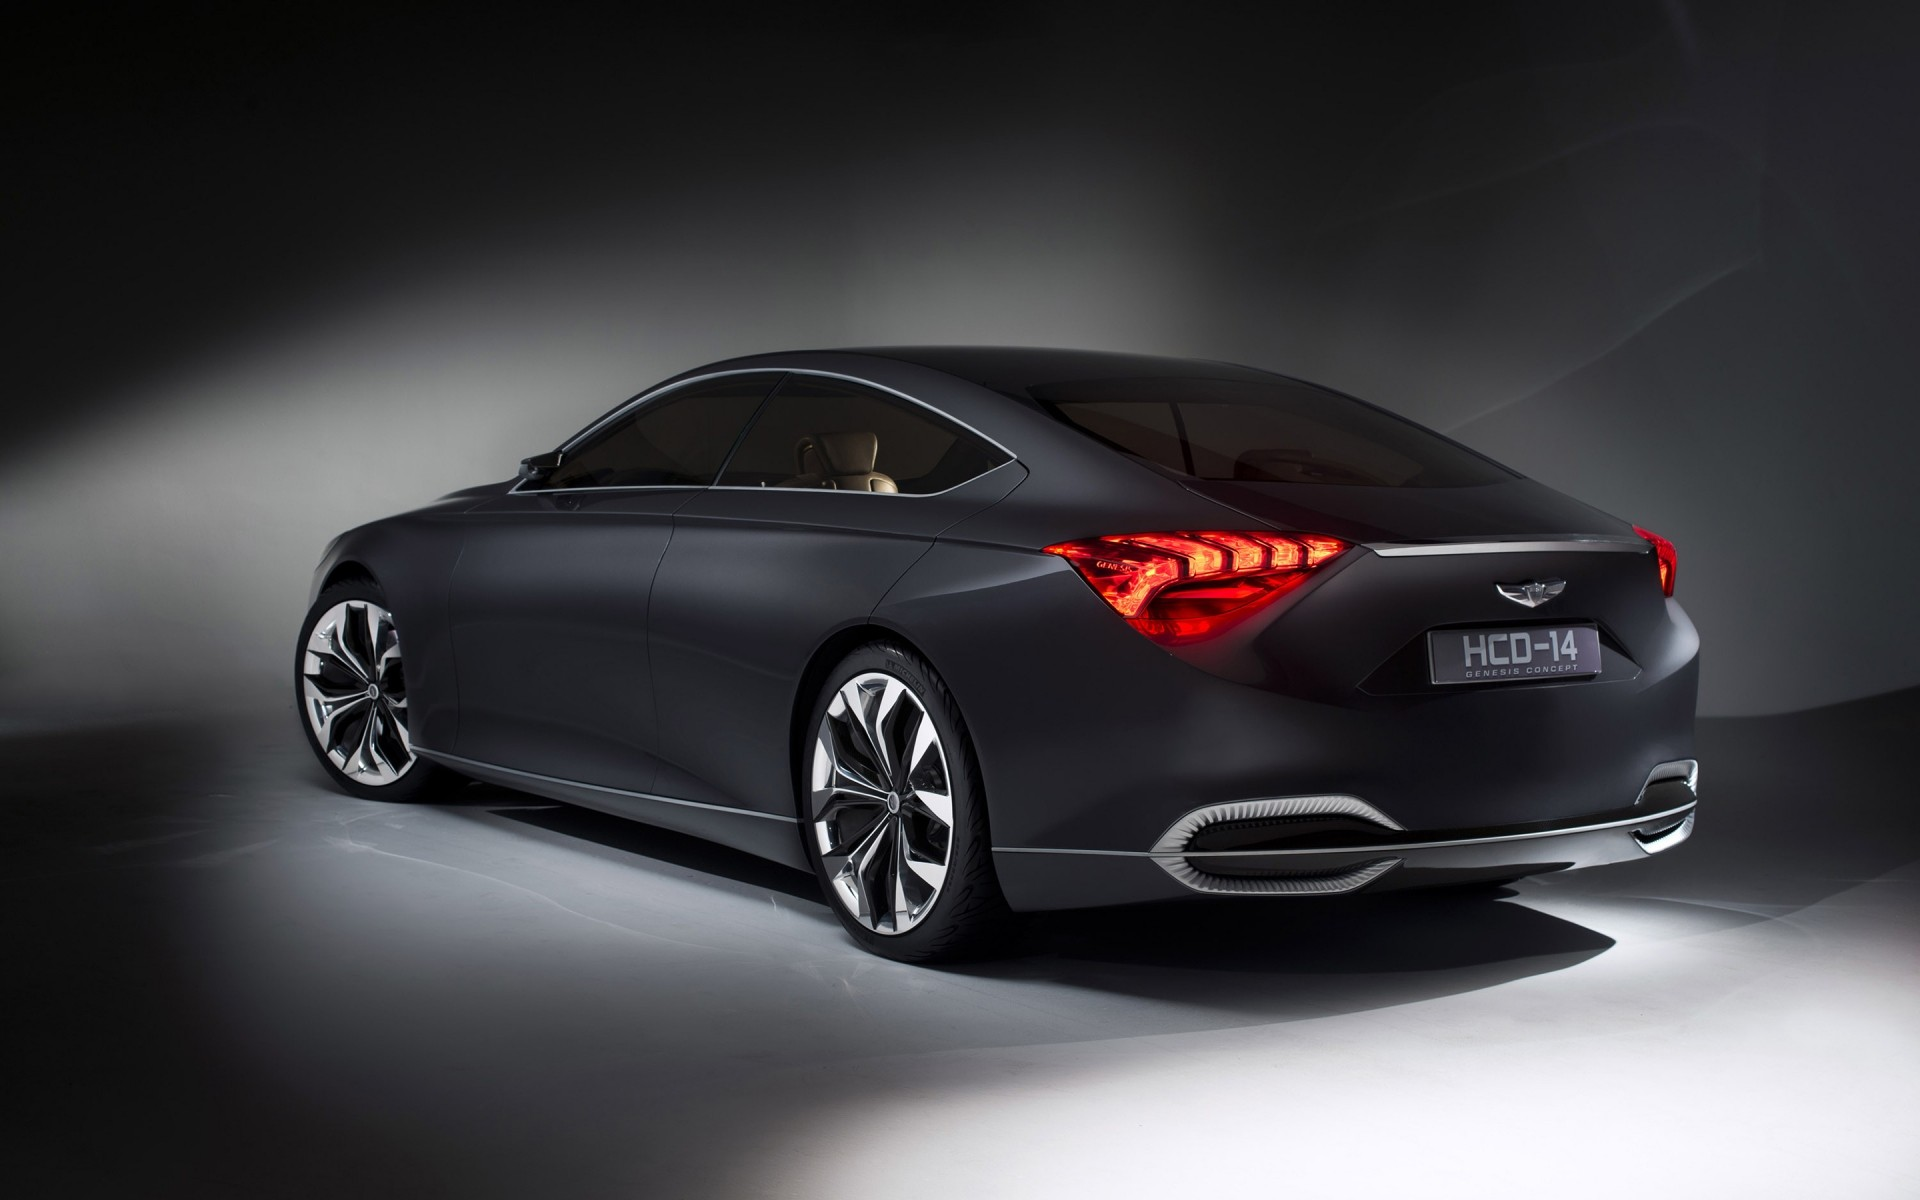 Rear Of Hyundai Genesis Concept Android Wallpapers For Free